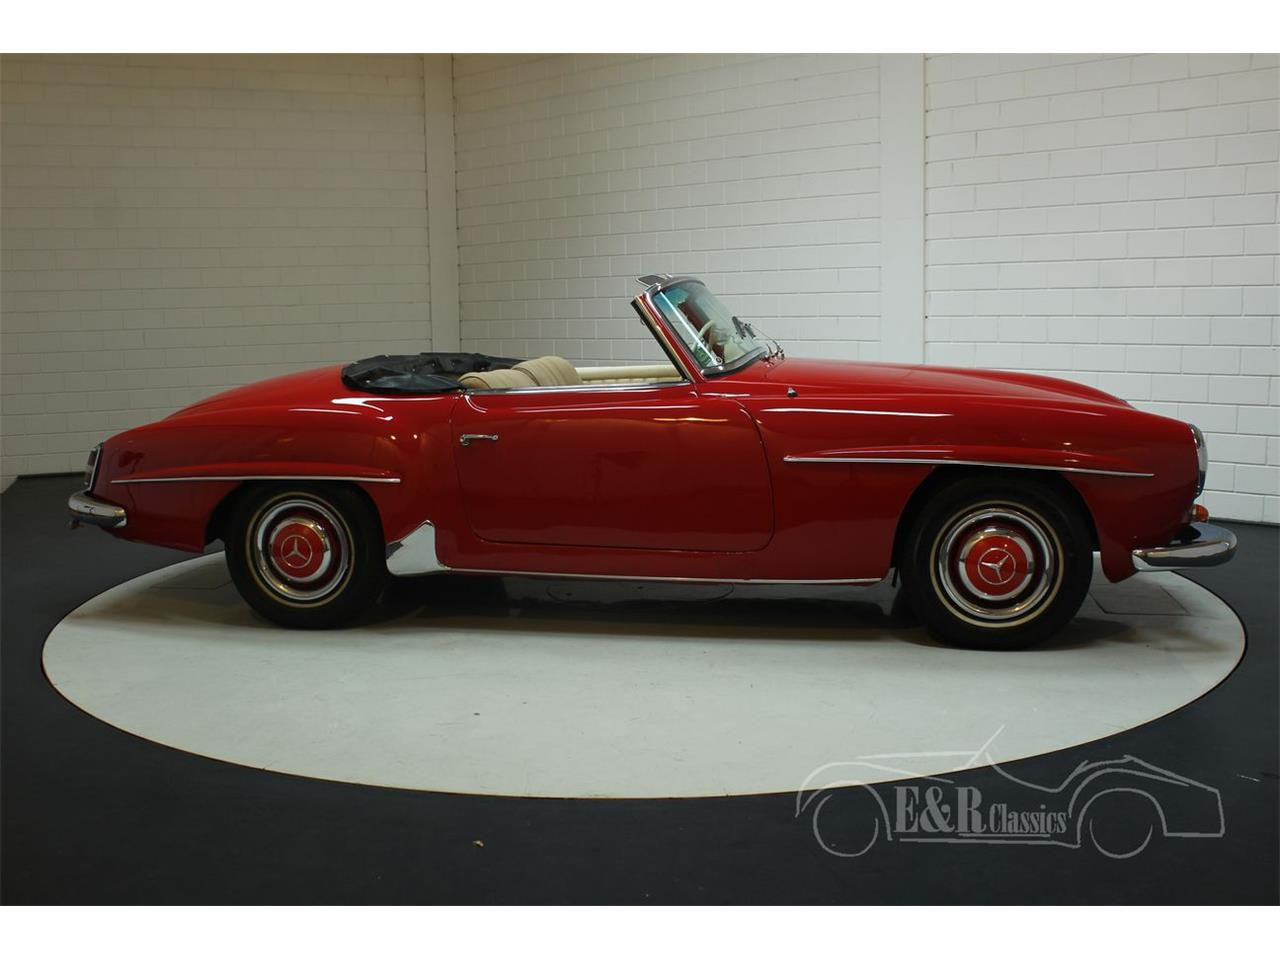 Large Picture of Classic '56 Mercedes-Benz 190SL located in - Keine Angabe - Offered by E & R Classics - PH44